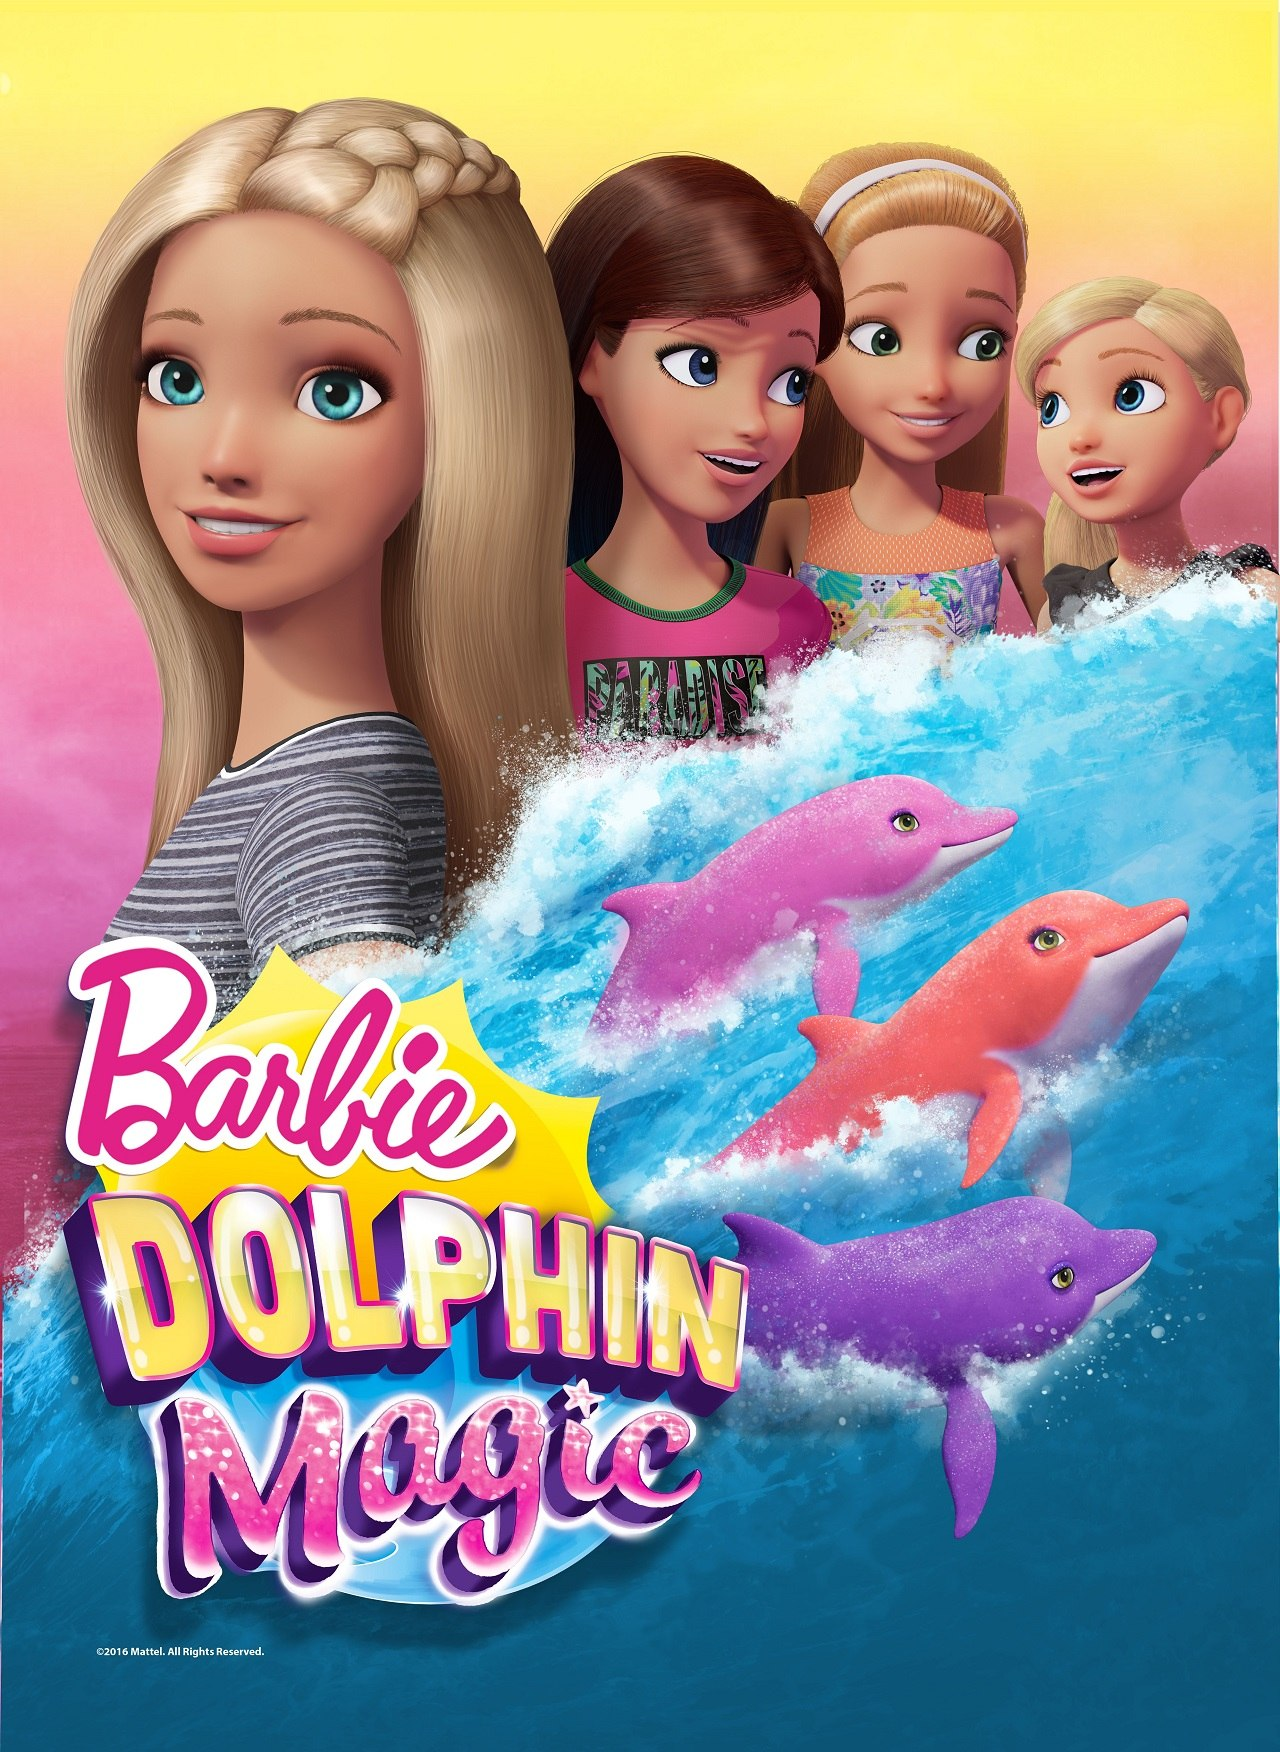 mattel announces two new animated barbie series tv special animation world network. Black Bedroom Furniture Sets. Home Design Ideas